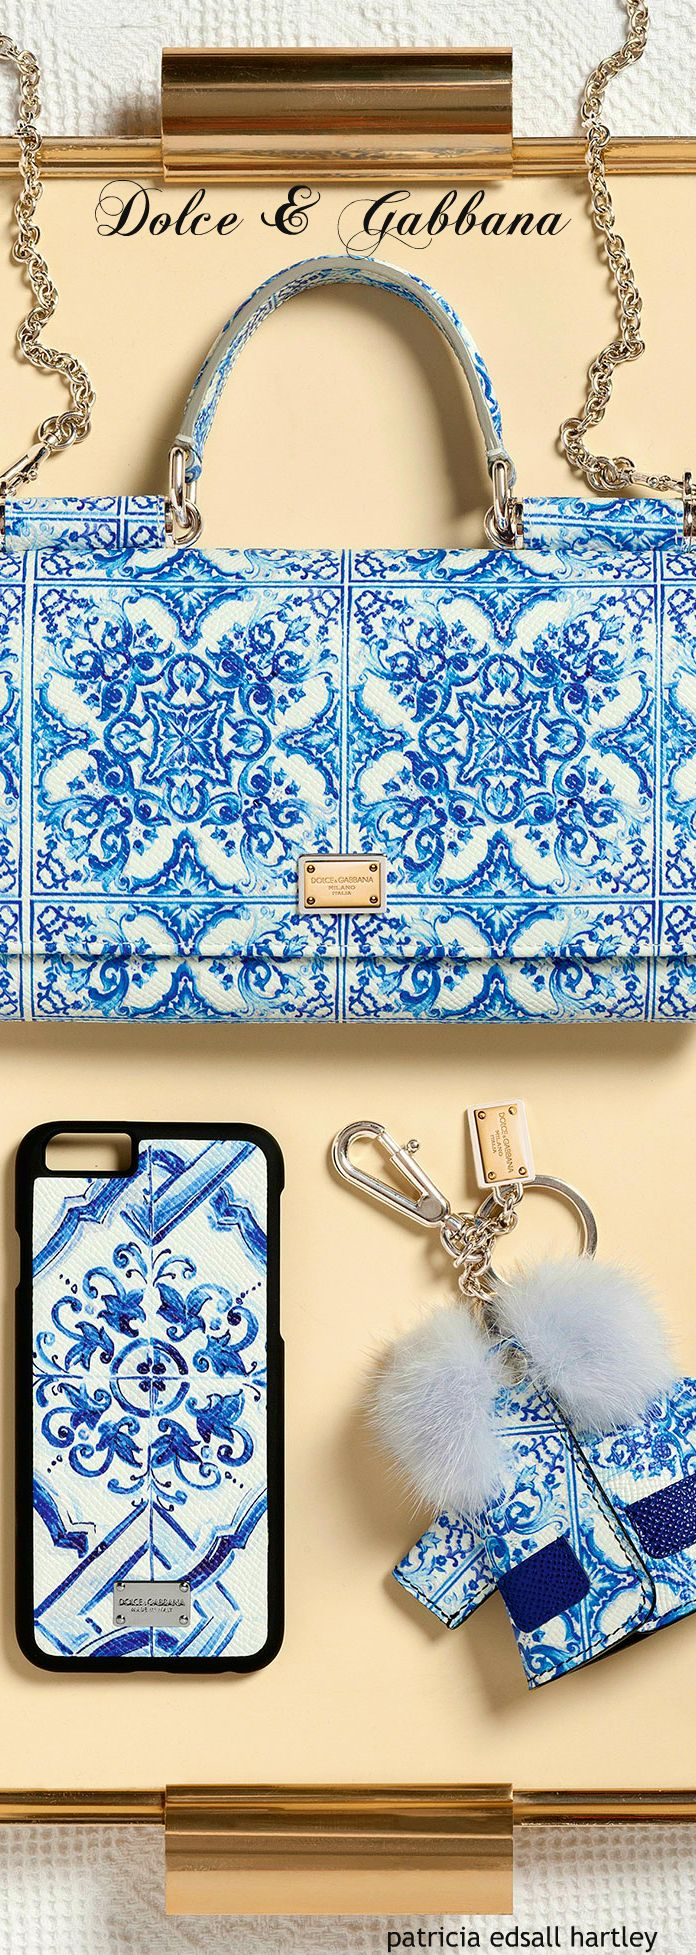 Dolce  Gabbana - Winter 2016 LOve.... Like antique transferware. Cell Phones & Accessories - Cell Phone, Cases & Covers - http://amzn.to/2iNpCNS